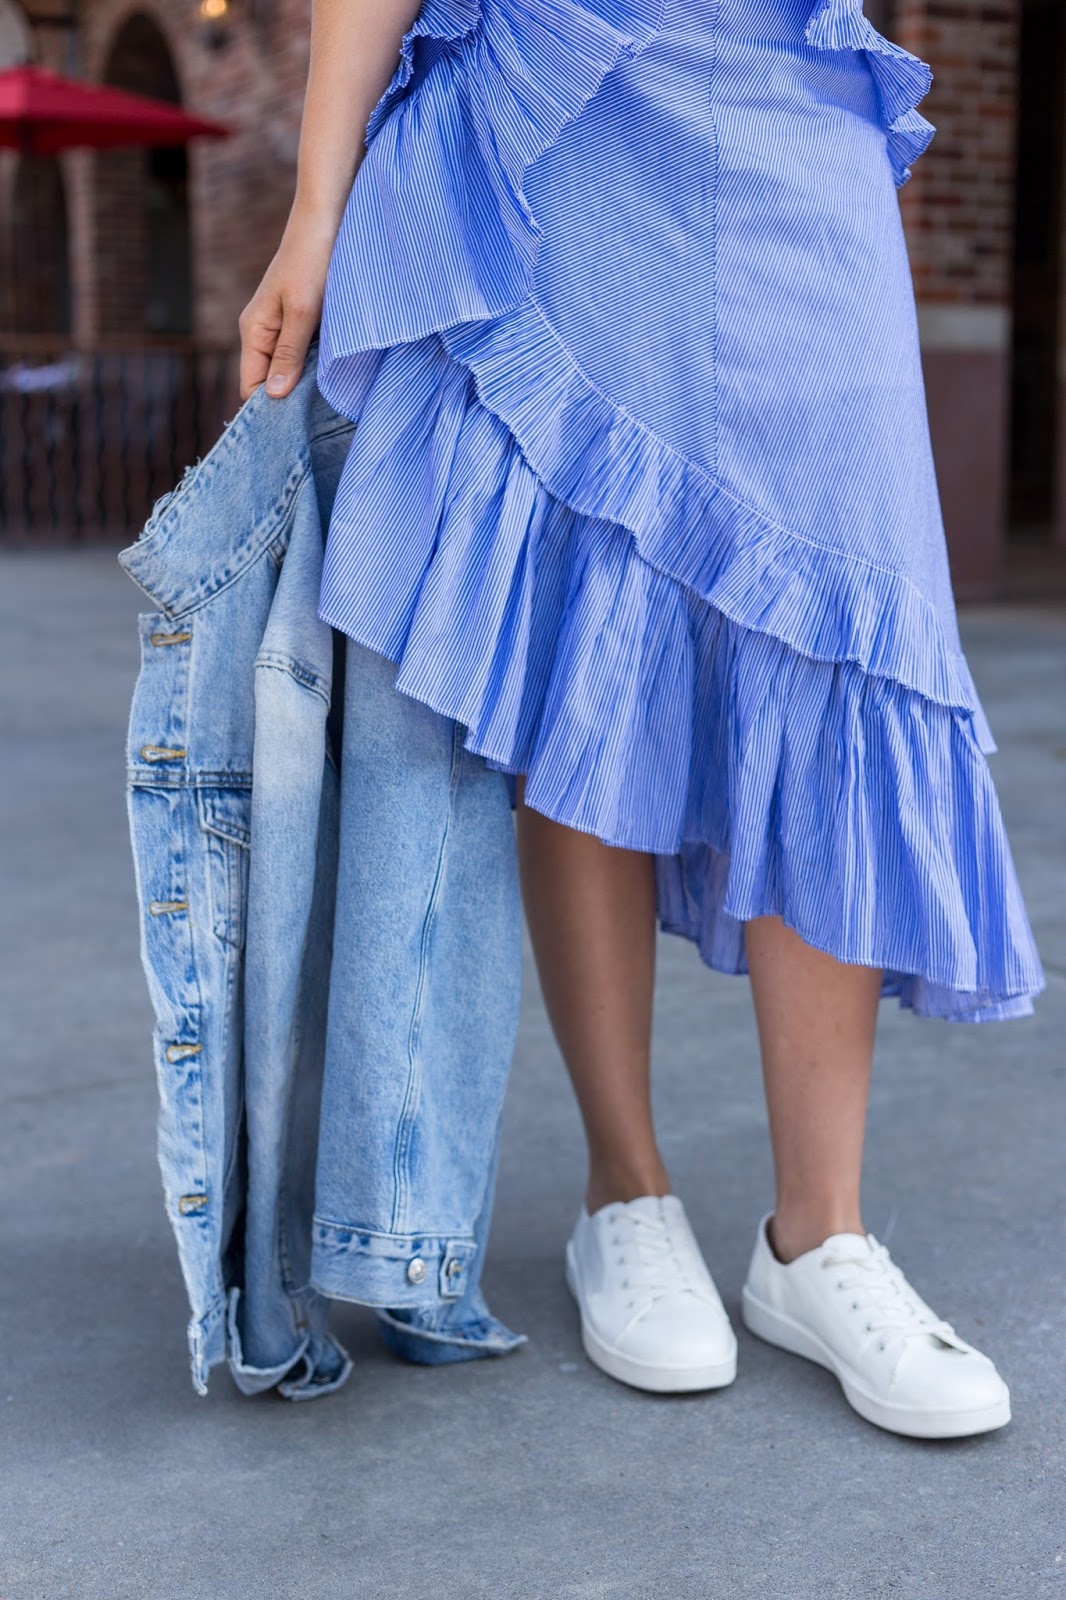 ruffle skirt with sneakers